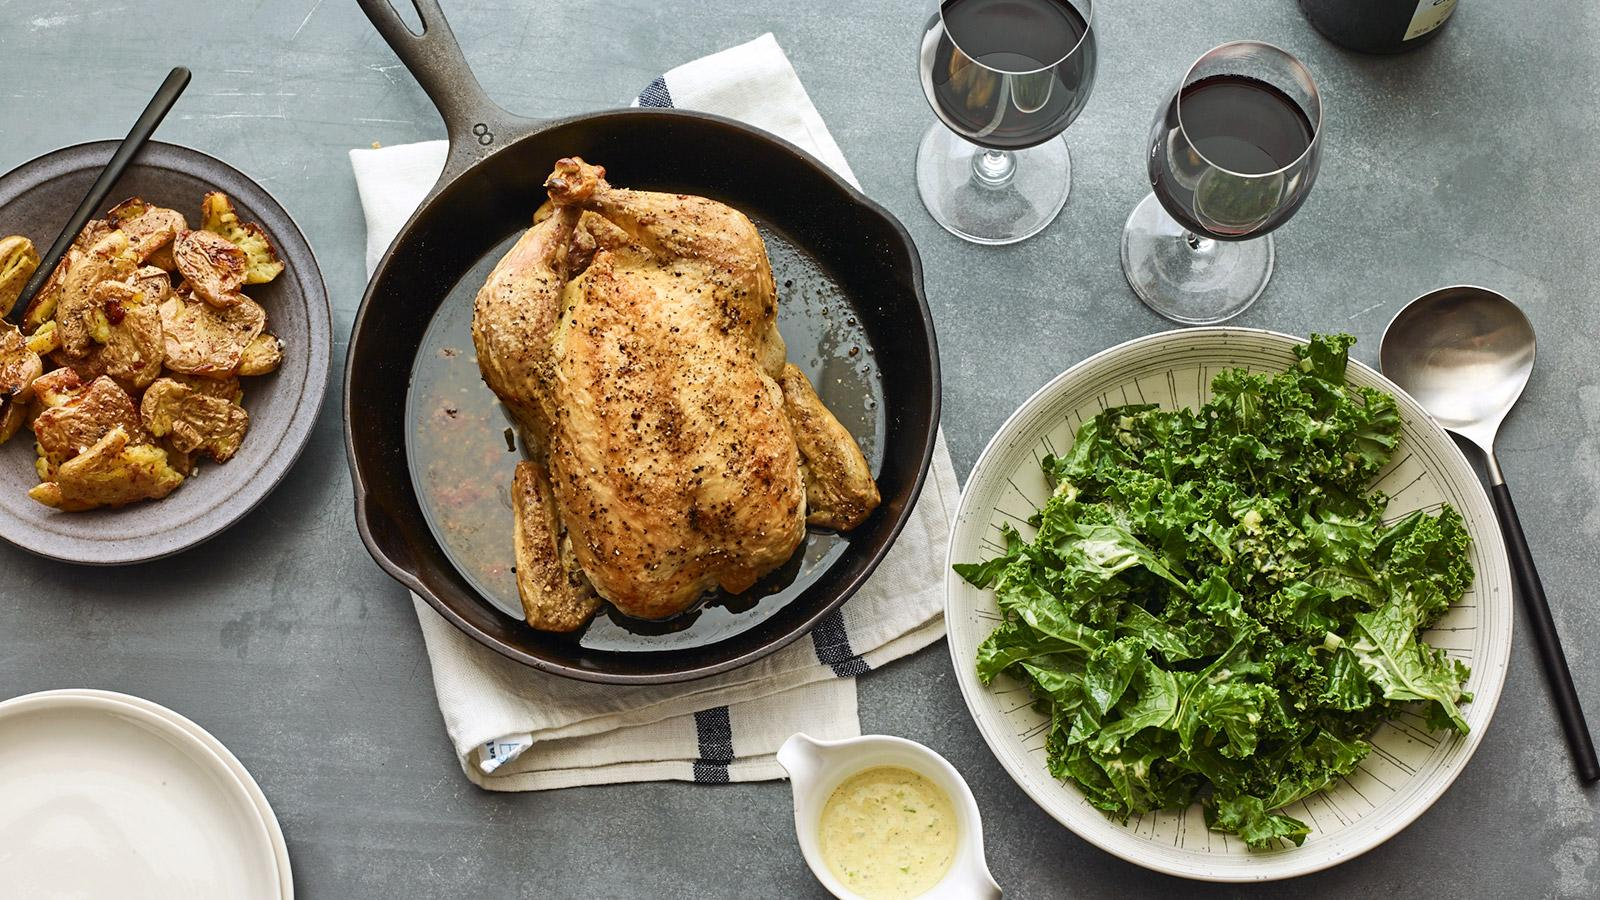 Perfect Match Recipe: Roast Chicken with Crispy Potatoes, Kale and Grilled-Scallion Vinaigrette